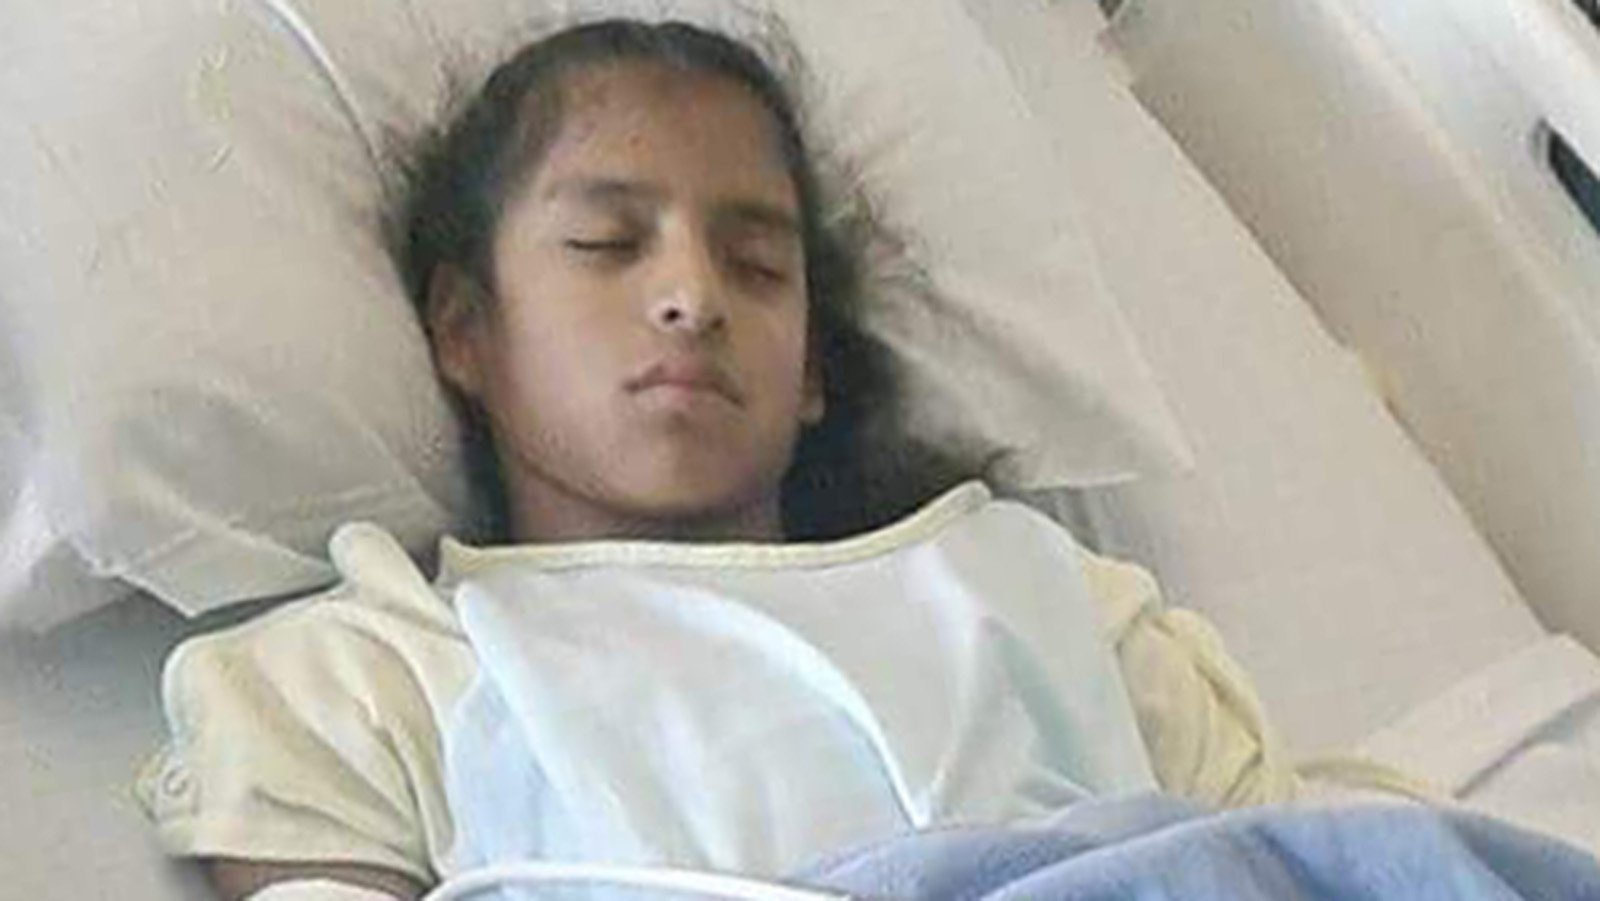 Girl with cerebral palsy detained by ICE agents after surgery